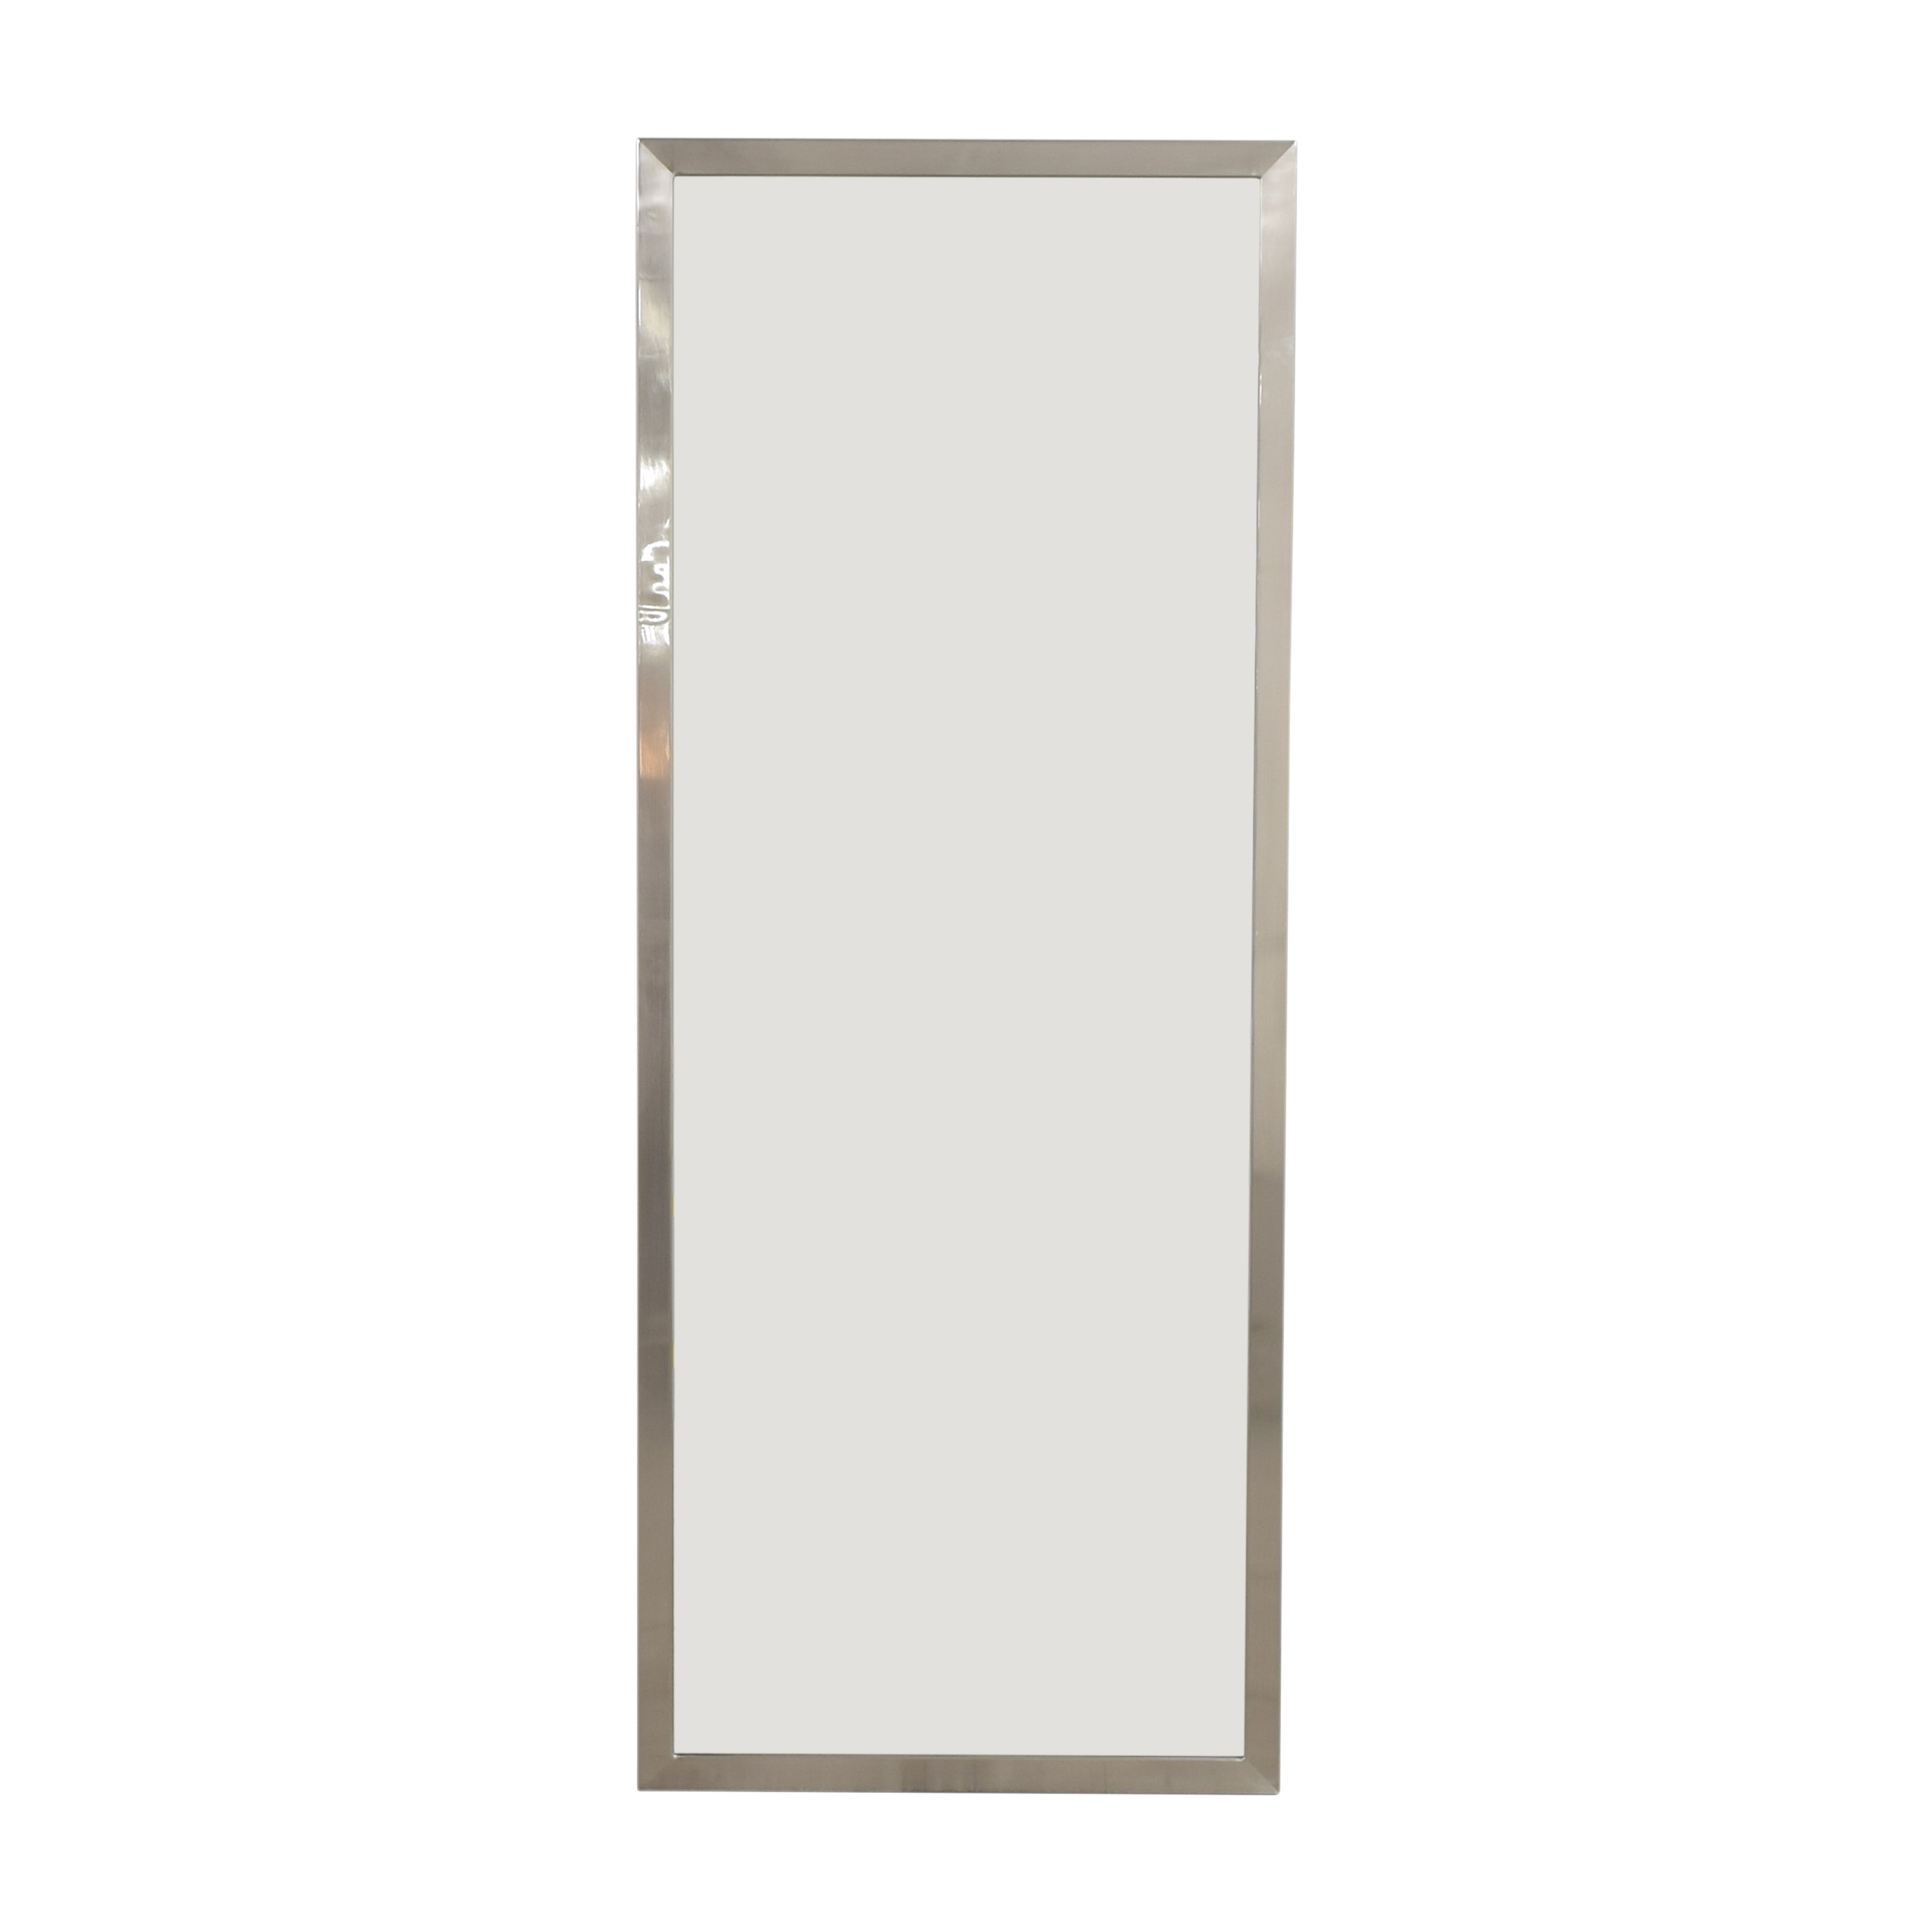 shop Pottery Barn Pottery Barn Framed Floor Mirror online